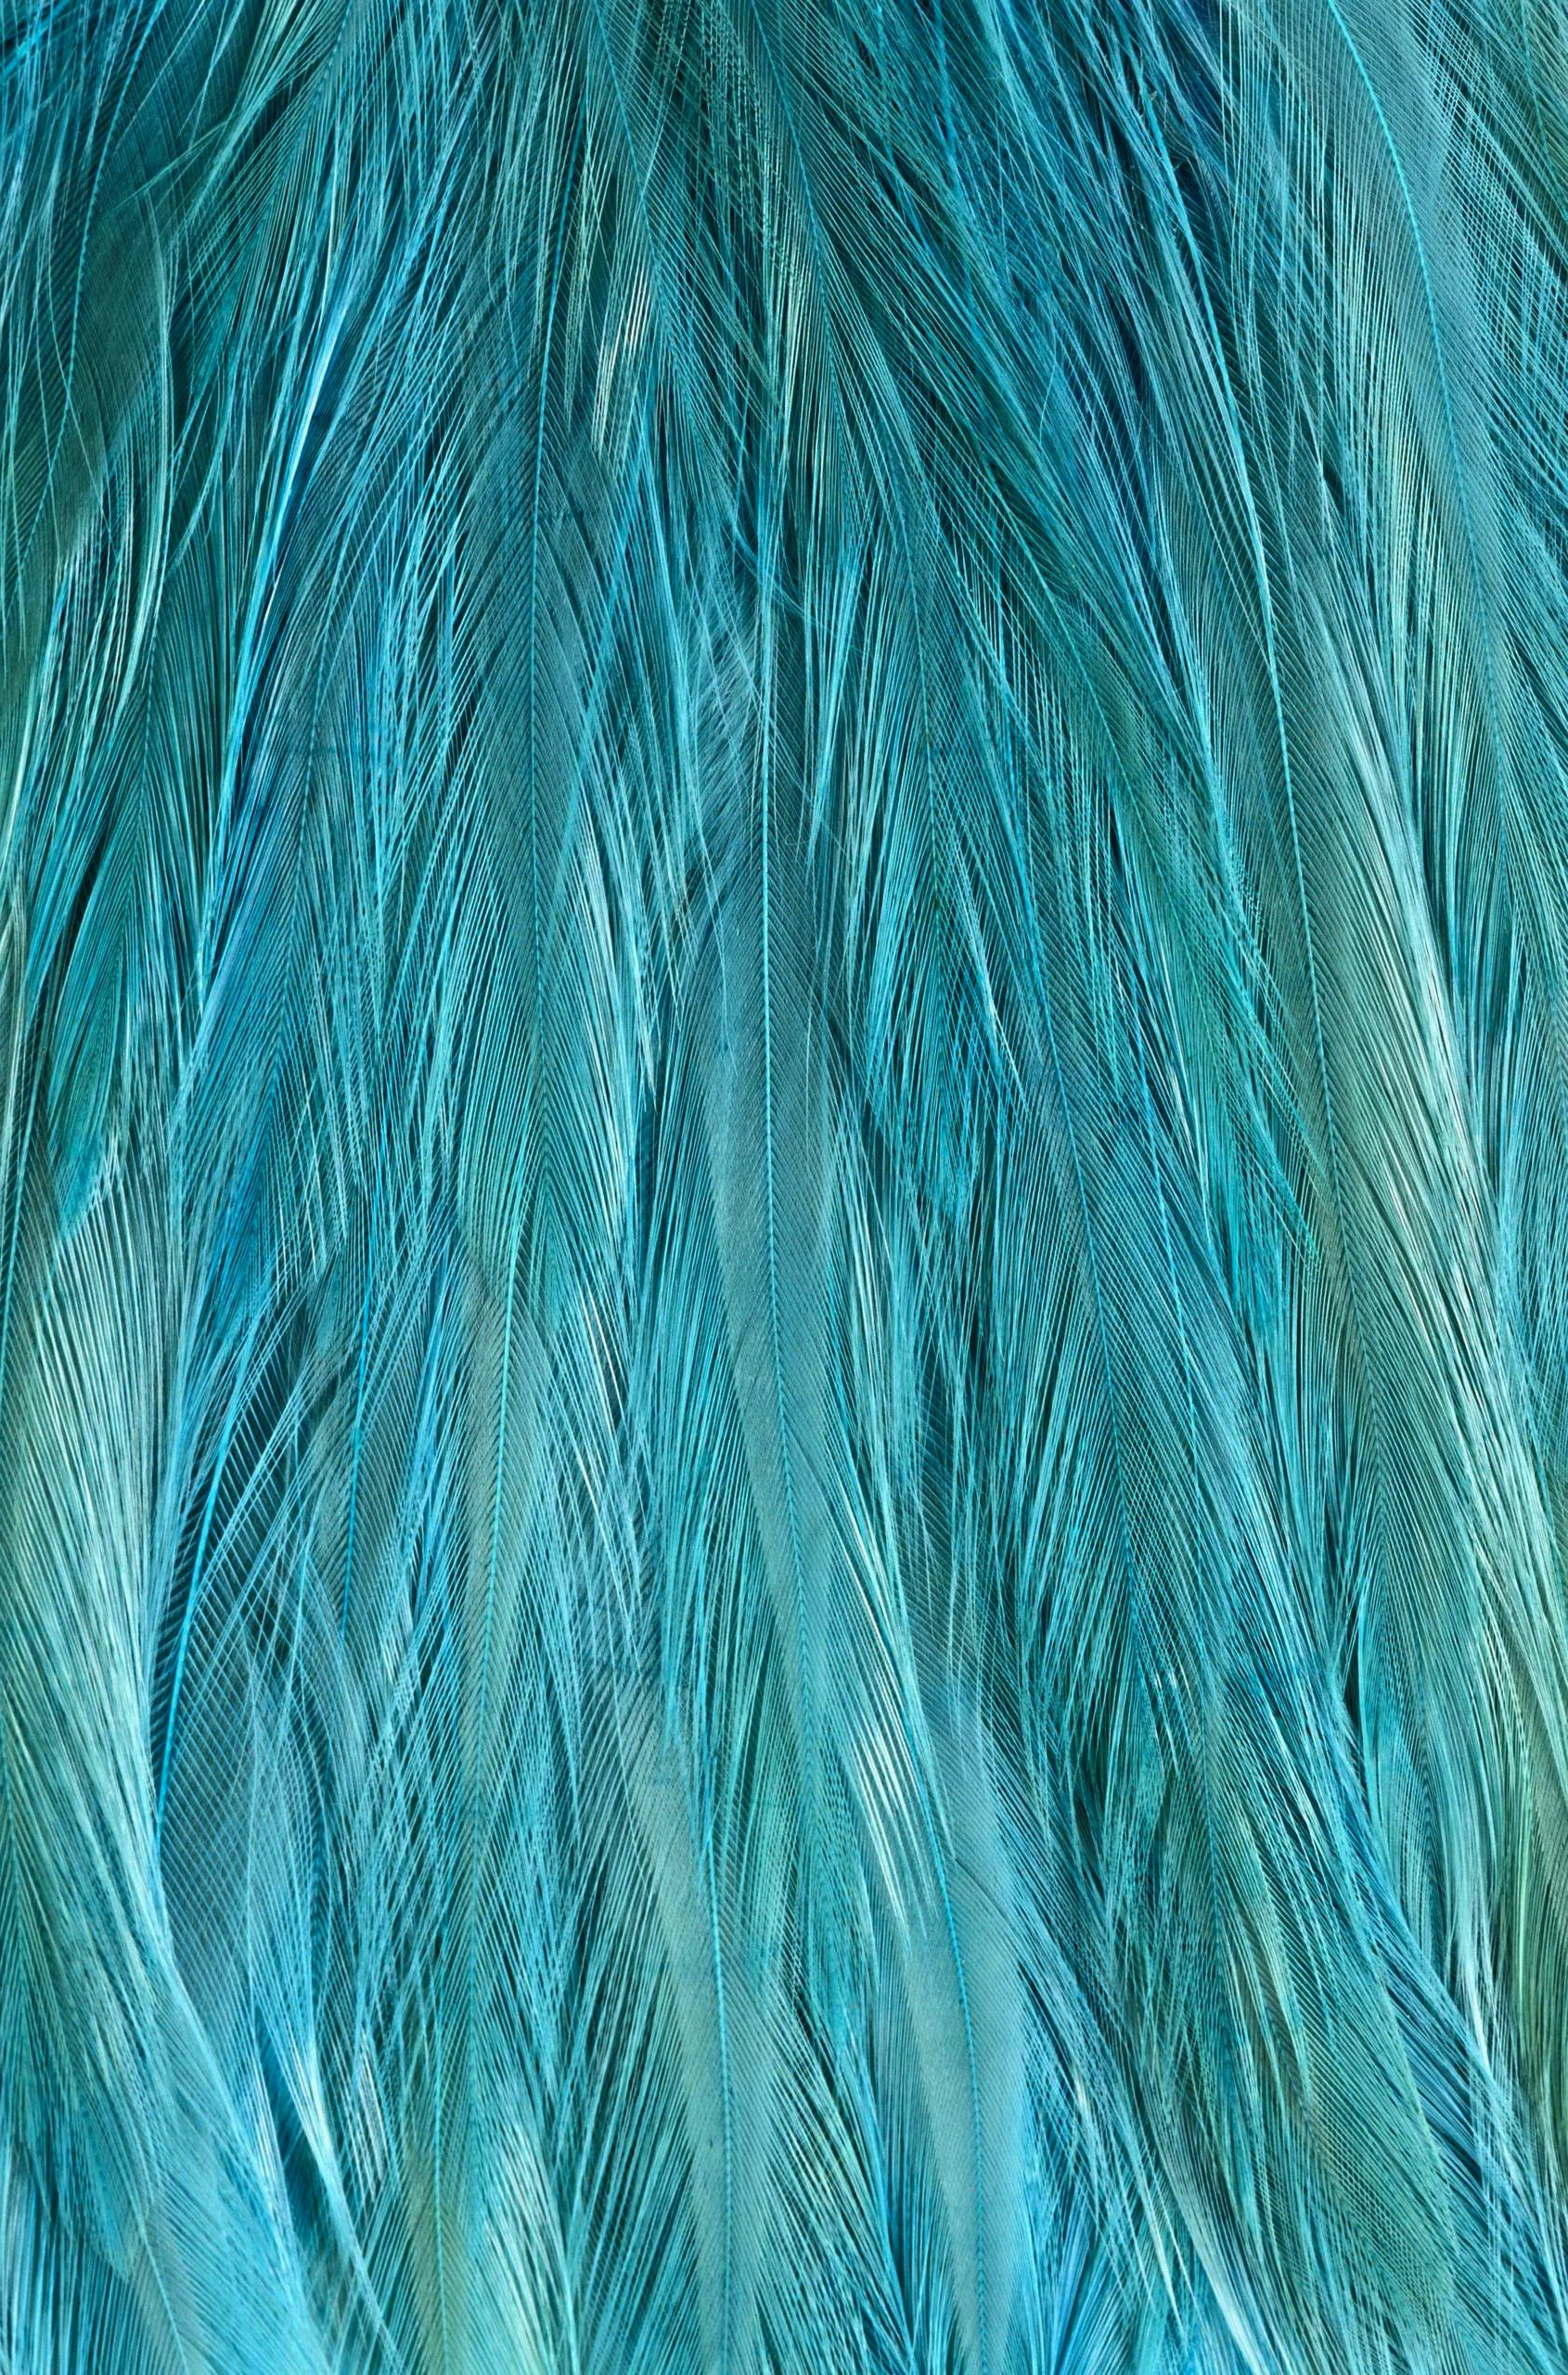 Feather Texture More Sebeju Pinterest Feathers